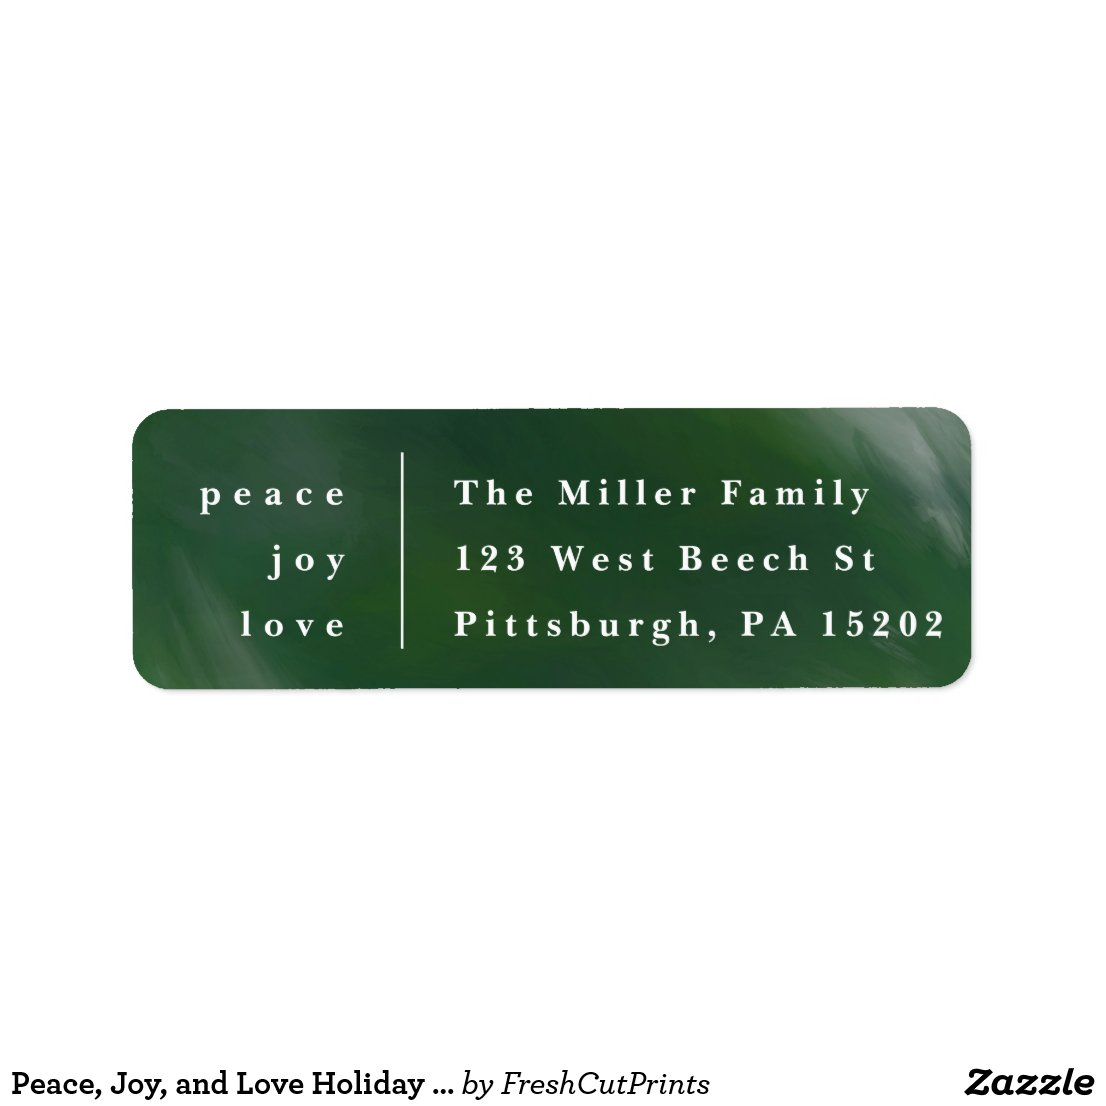 Peace, Joy, and Love Holiday Return Address Labels